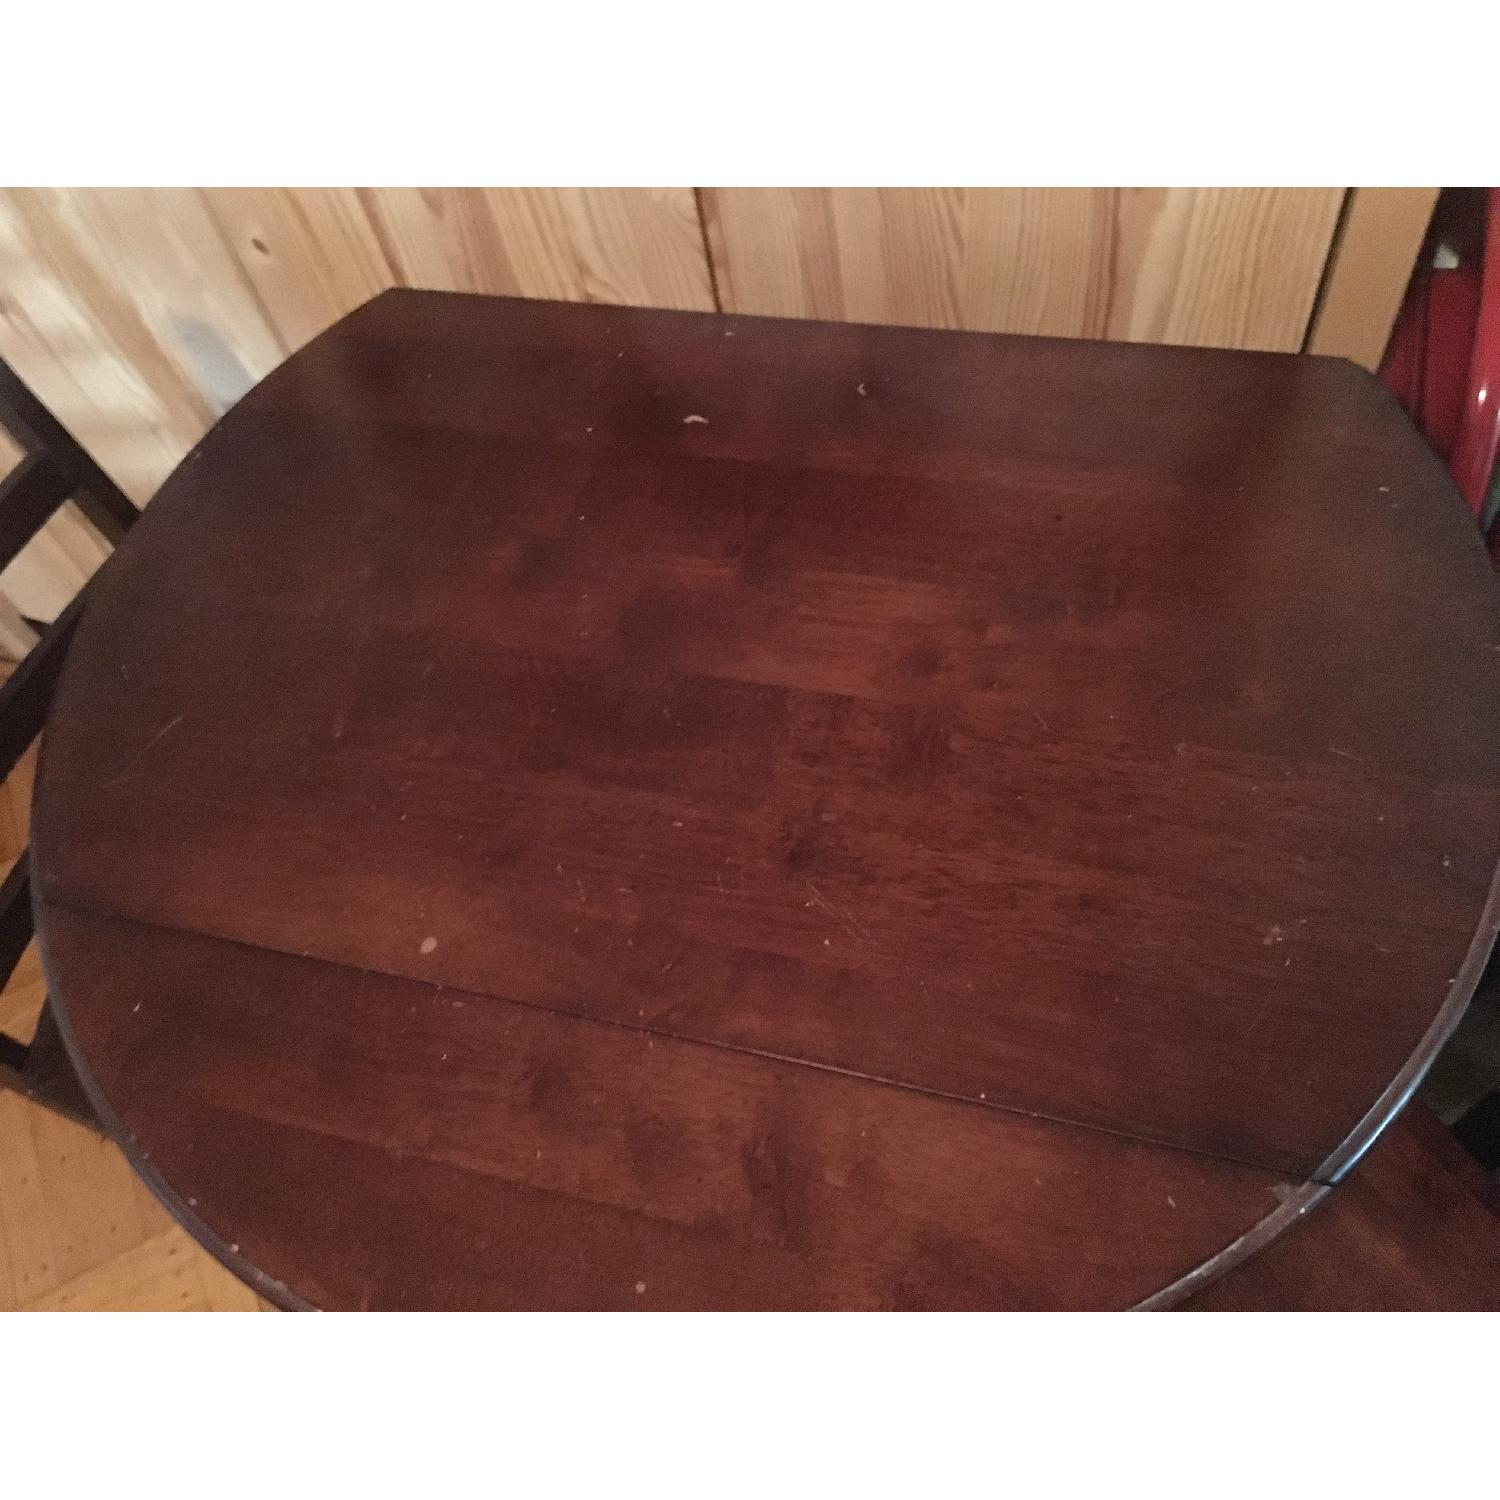 Wood Pub Table w/ 2 Chairs - image-5